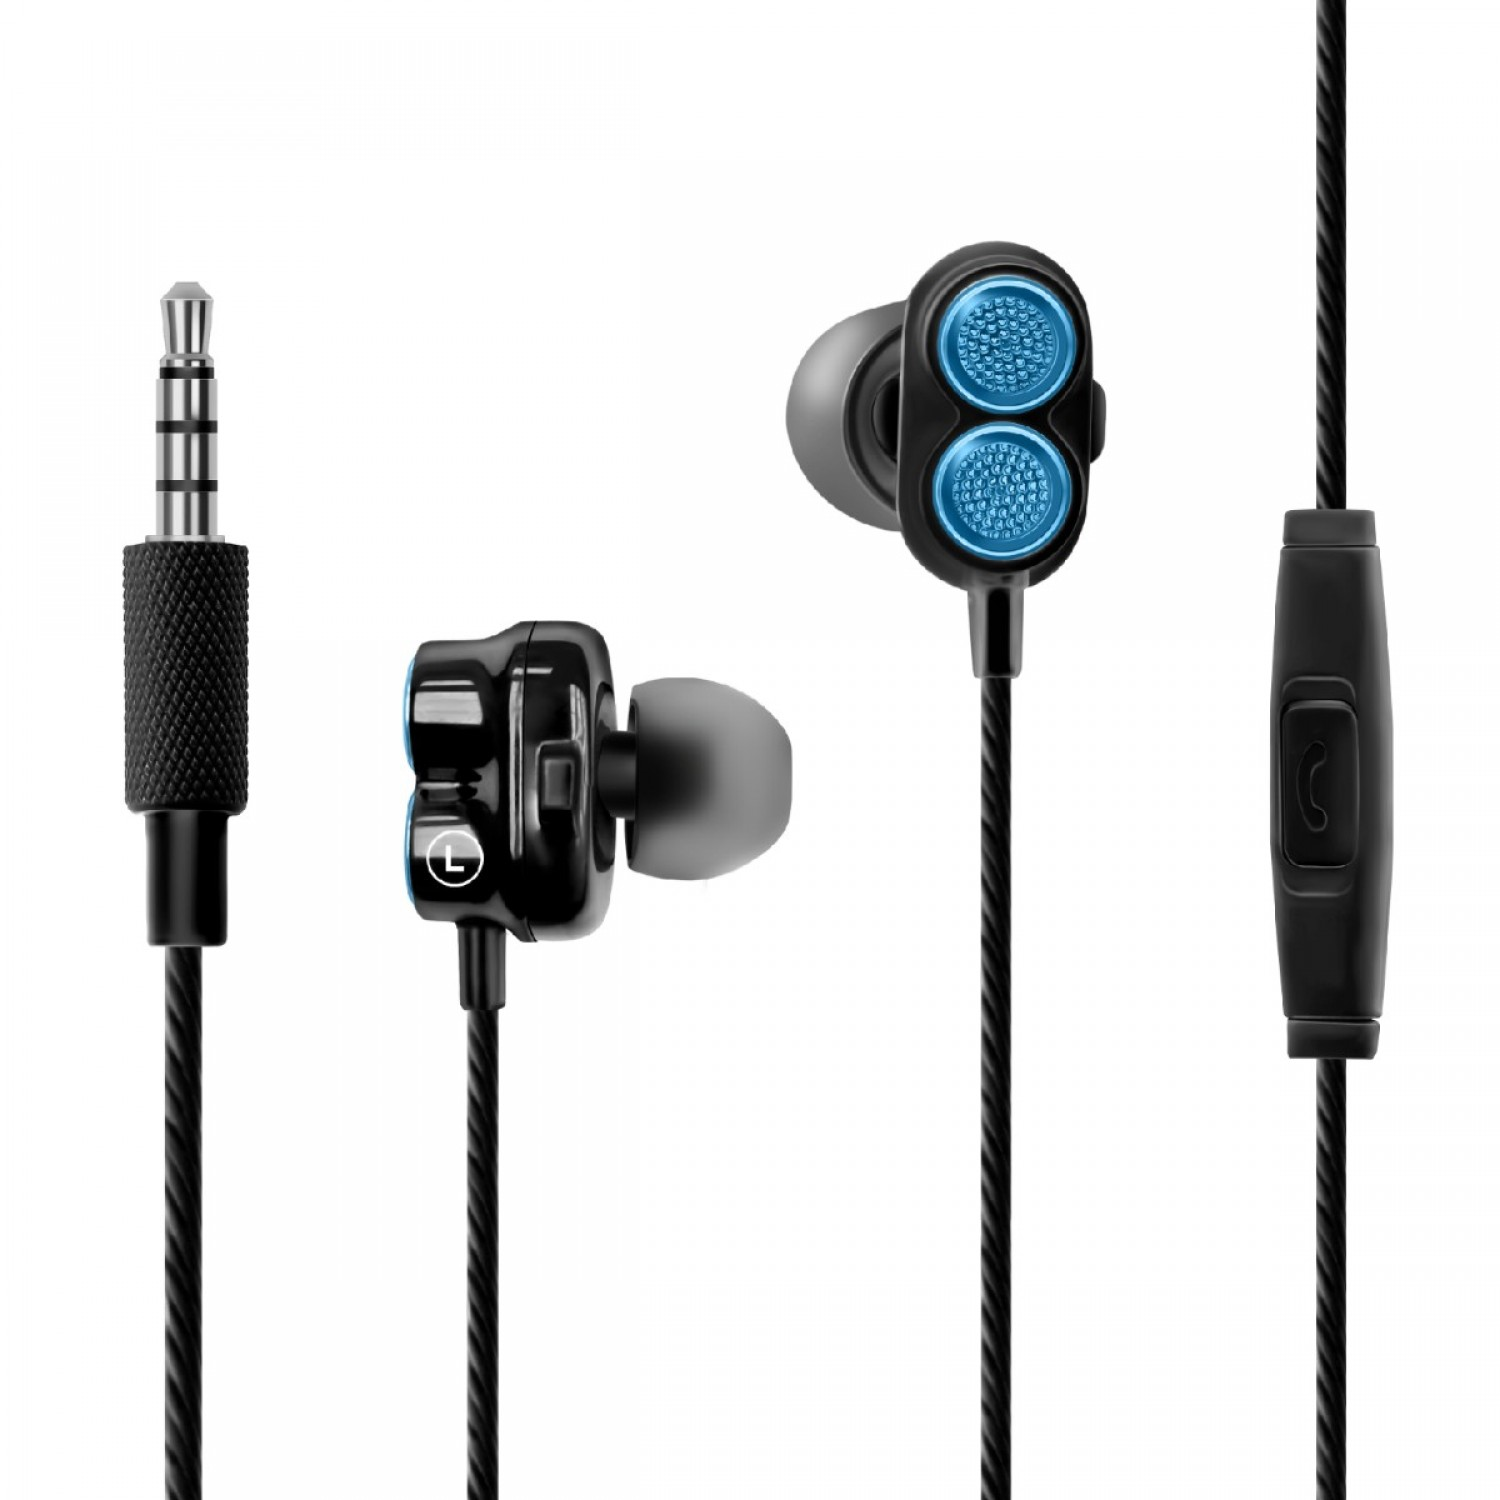 Promate In-Ear Earbuds, Dual Dynamic Driver Earphones with Dual Speakers, Built-In Mic, Deep Bass, Anti Tangle Cords and Noise Isolating HiFi Audio for Apple, Android, PC, Tablets, Laptops, Onyx Blue